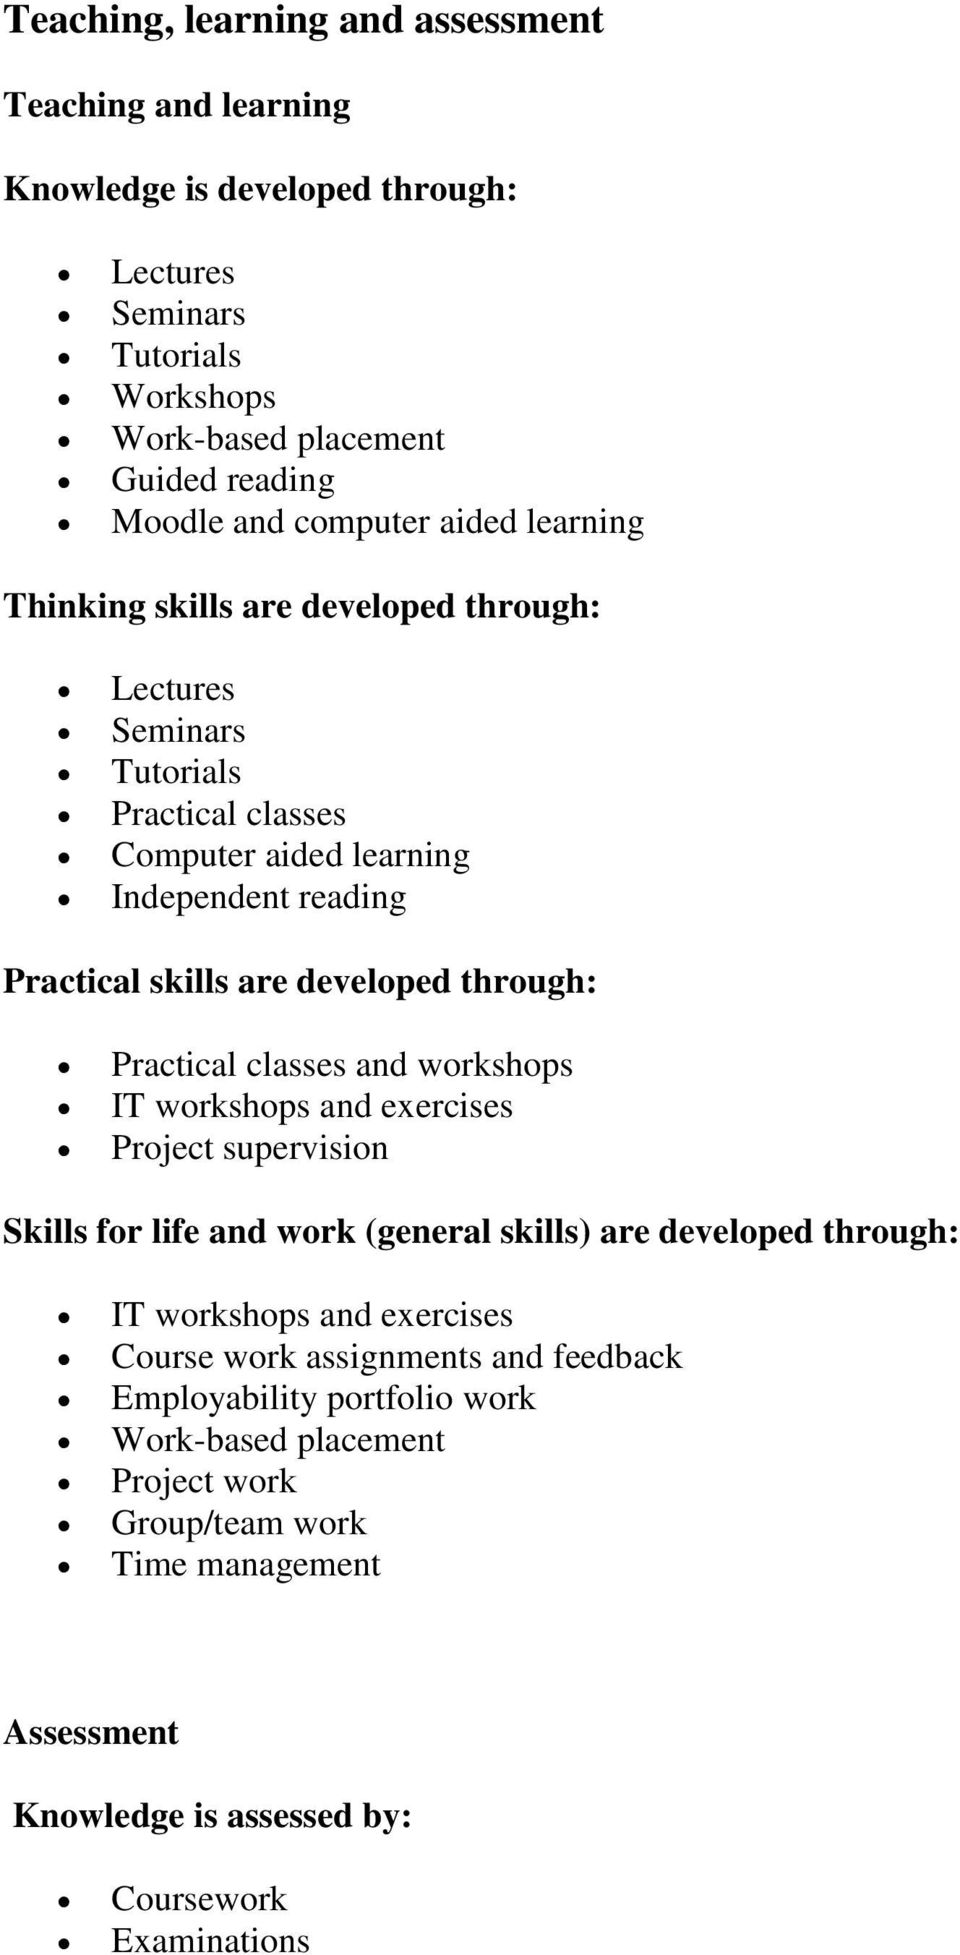 through: Practical classes and workshops IT workshops and exercises Project supervision Skills for life and work (general skills) are developed through: IT workshops and exercises